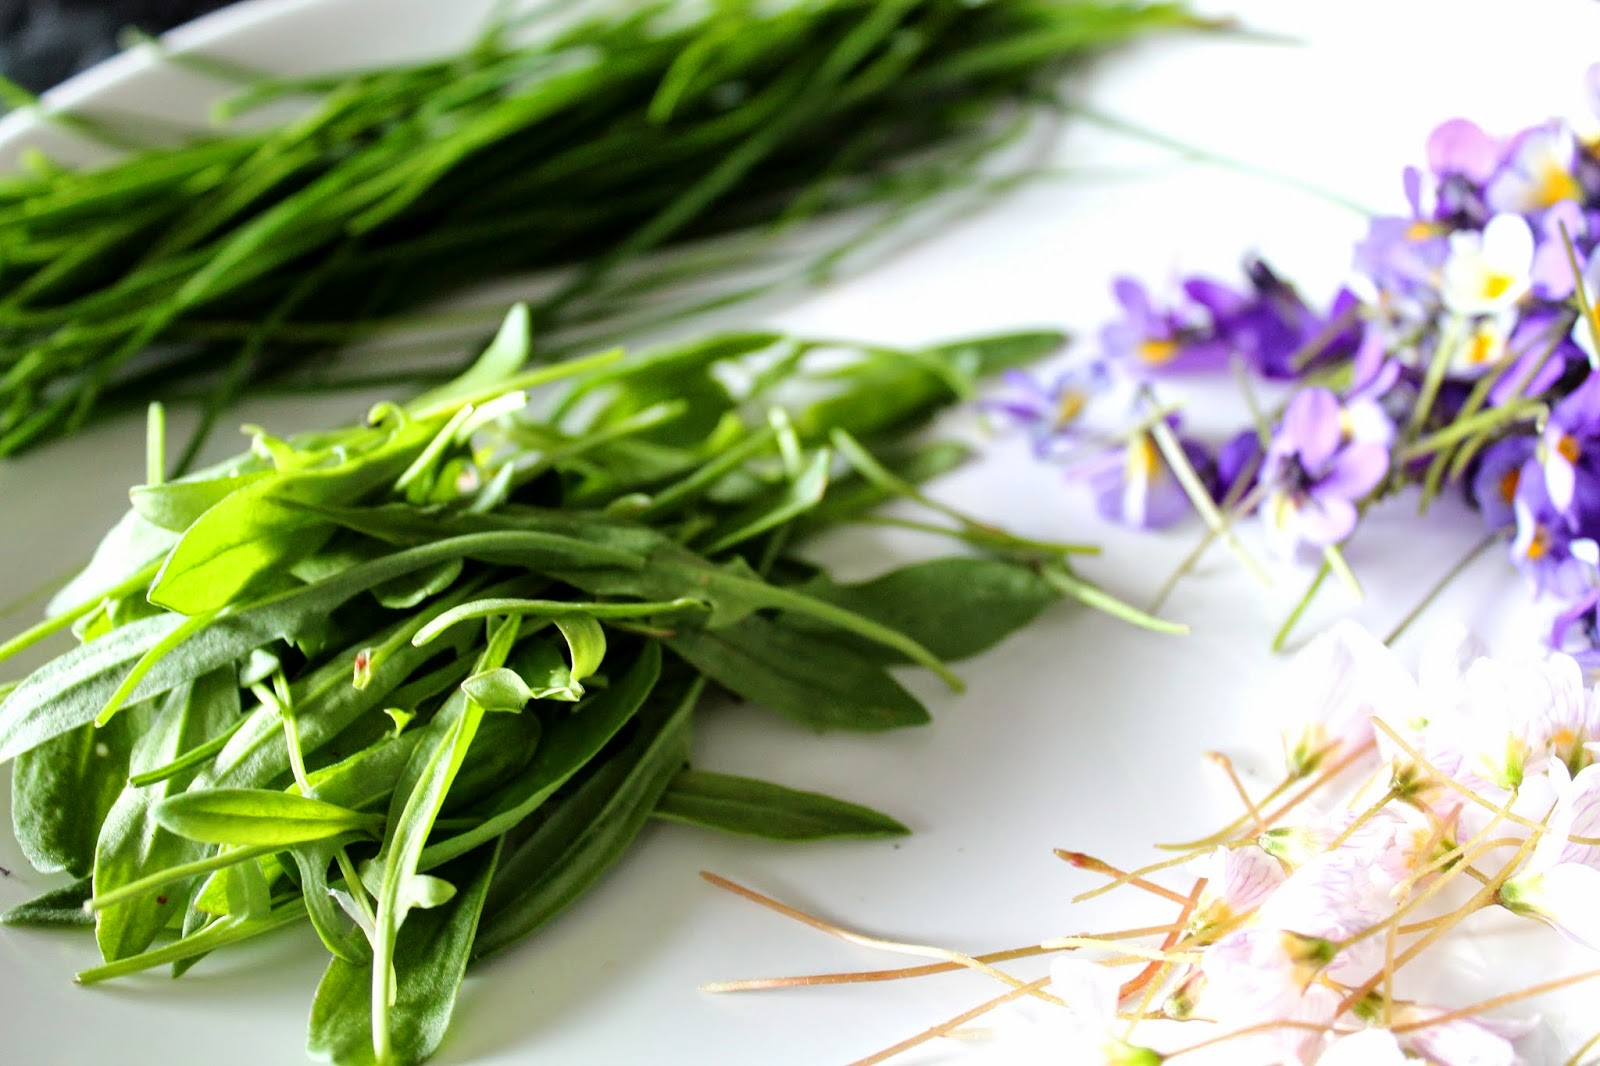 Chive, violets, wood sorrel flowers and sorrel | Alinan kotona blog